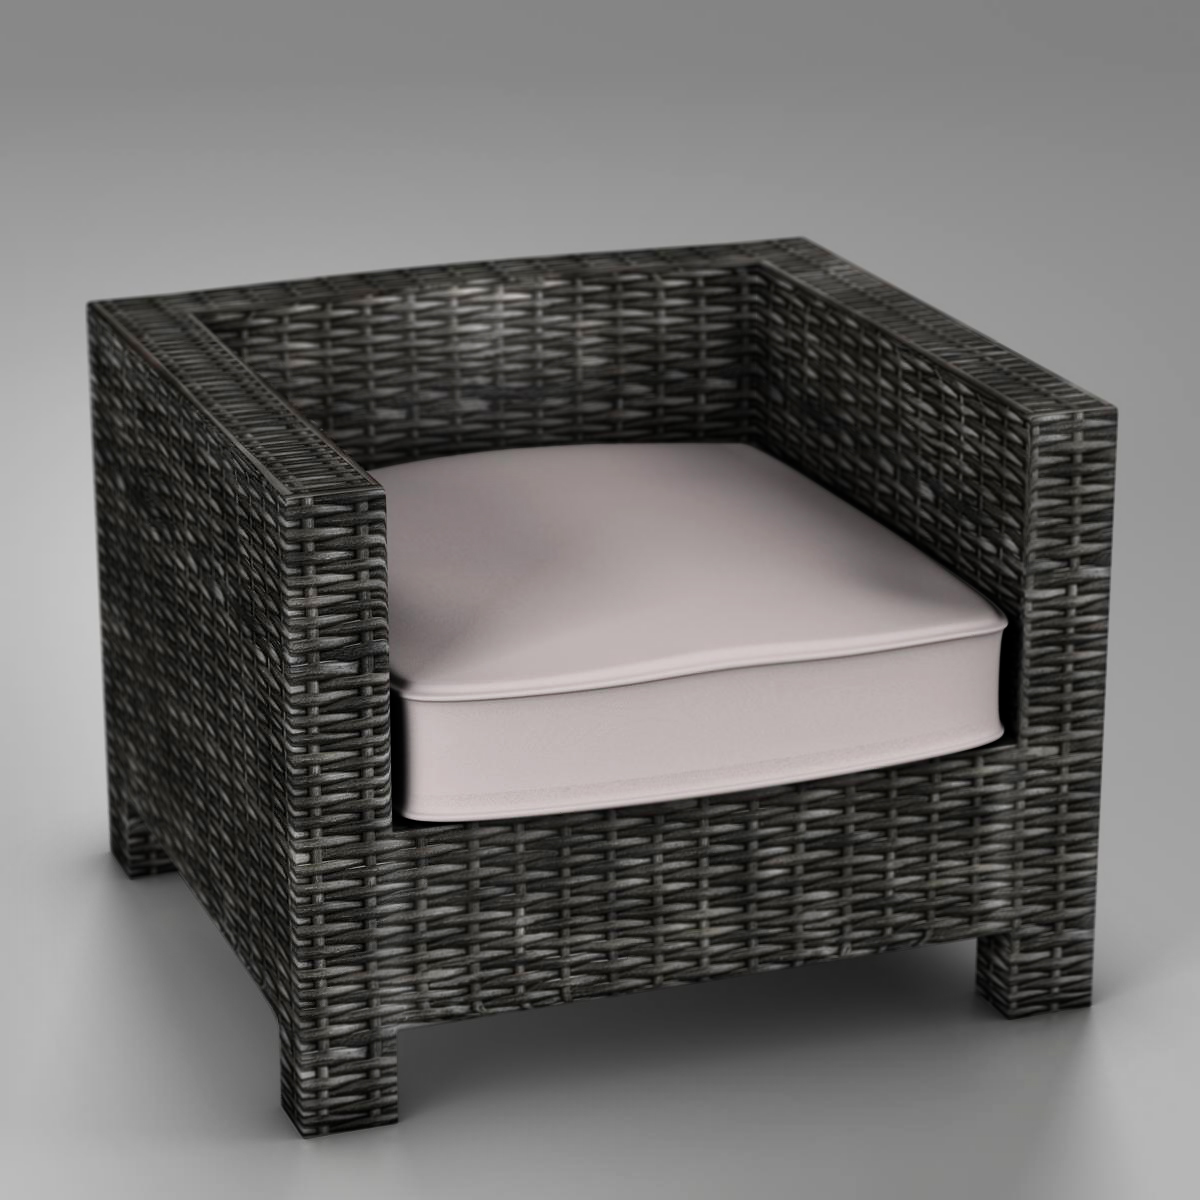 wicker couch 3d model 3ds max fbx c4d ma mb obj 162339